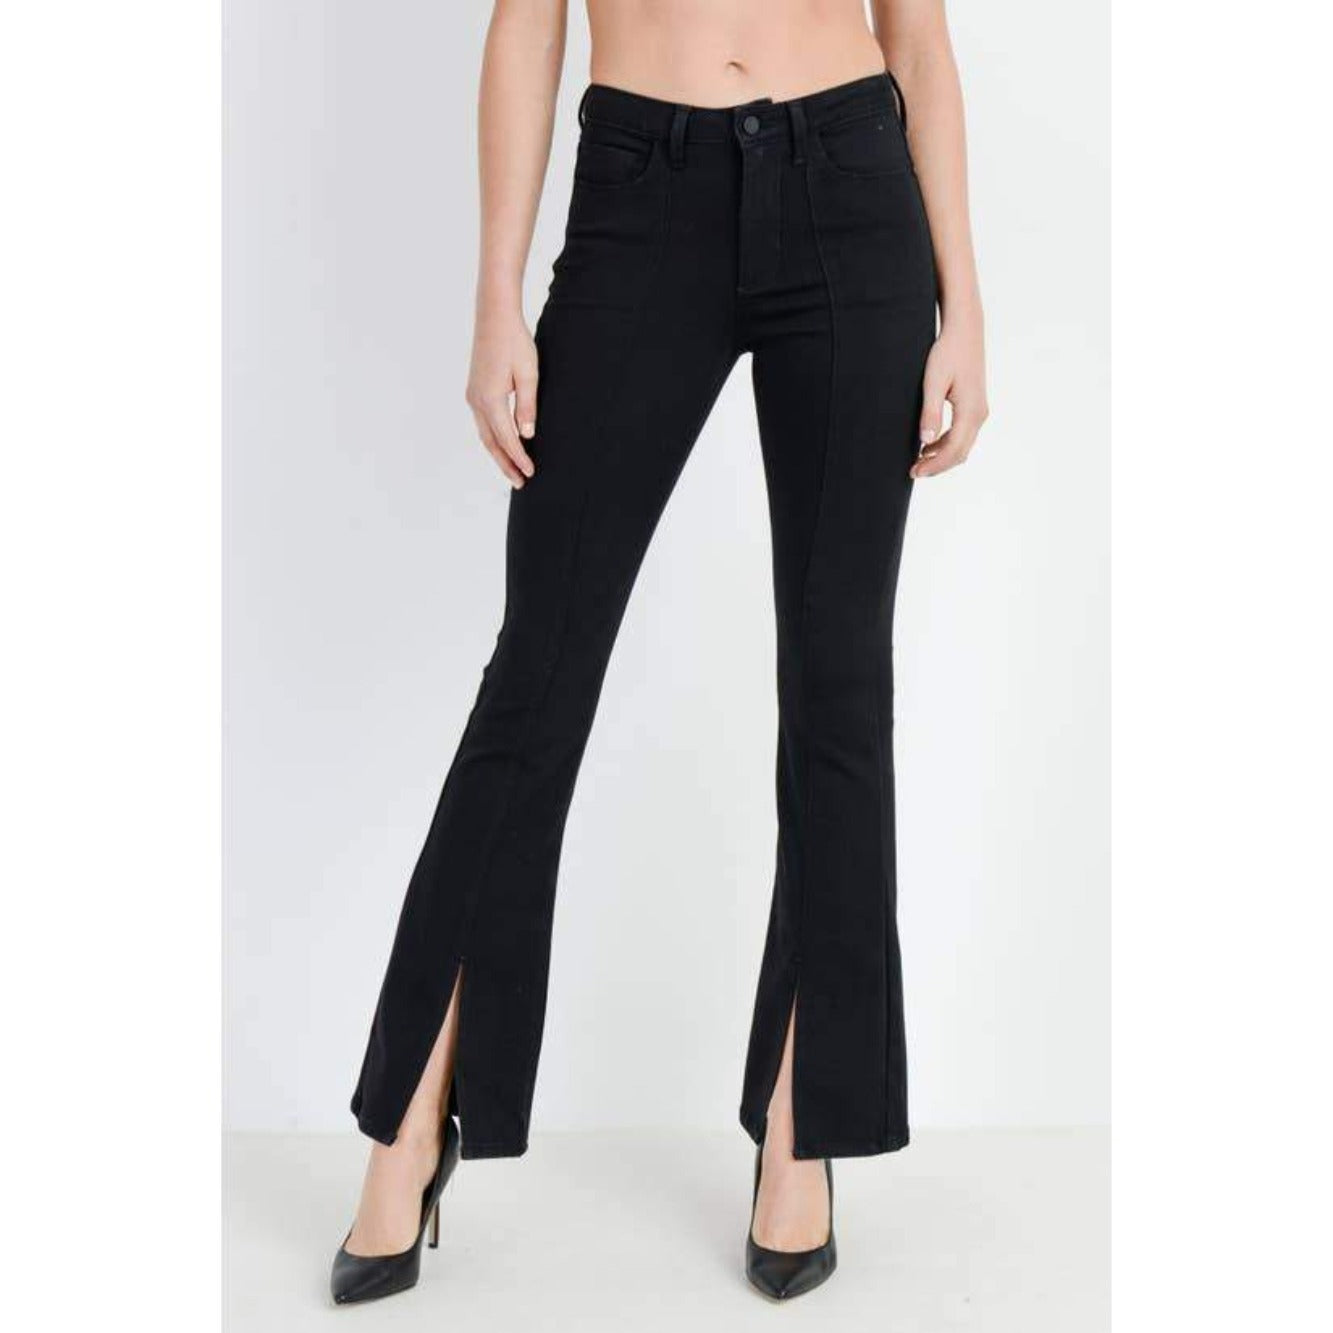 Black Flare Denim Pant with Front Seam and Front Slit